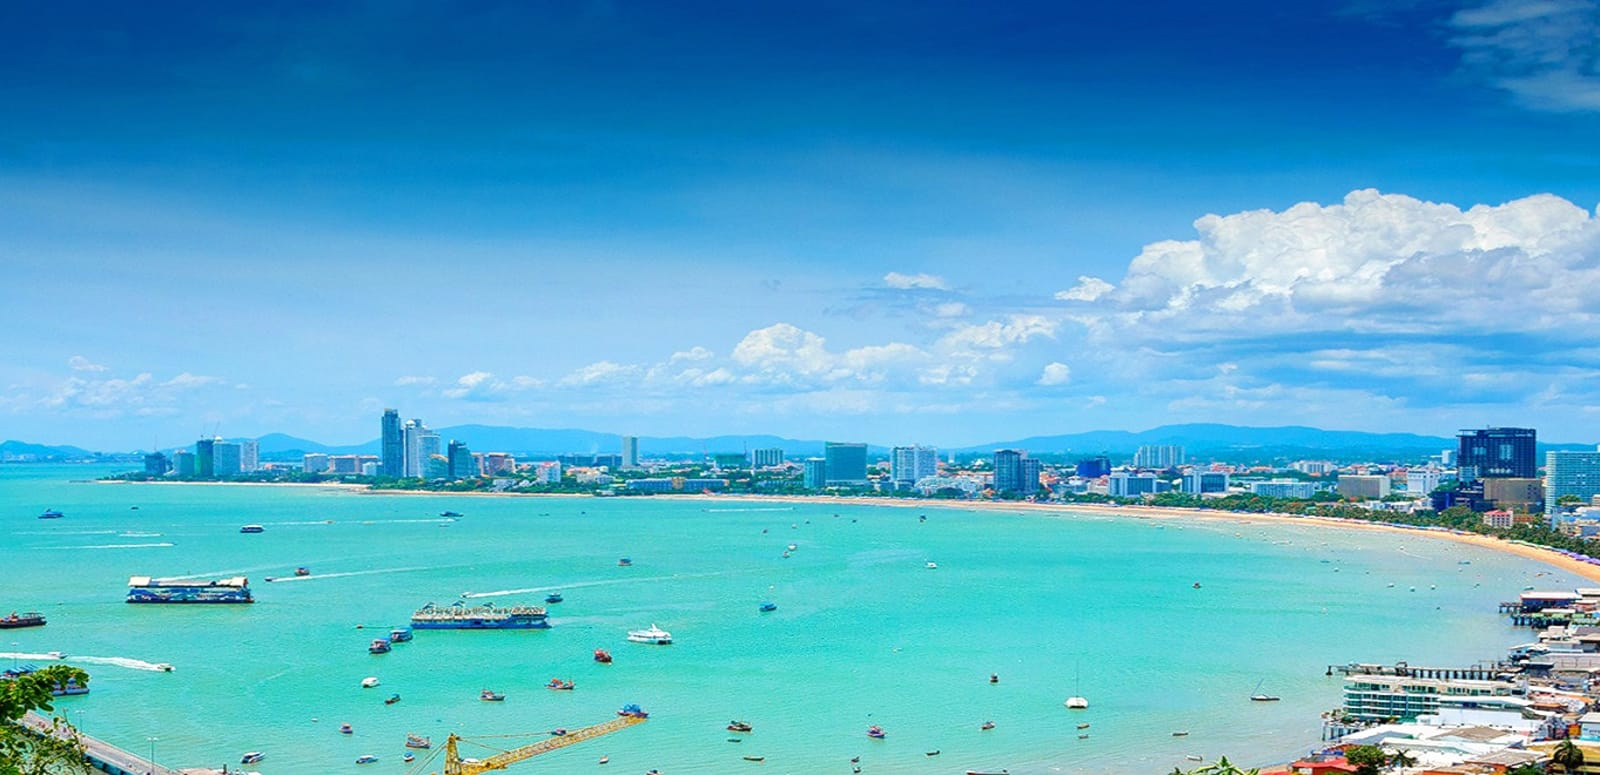 What to see in Pattaya 73